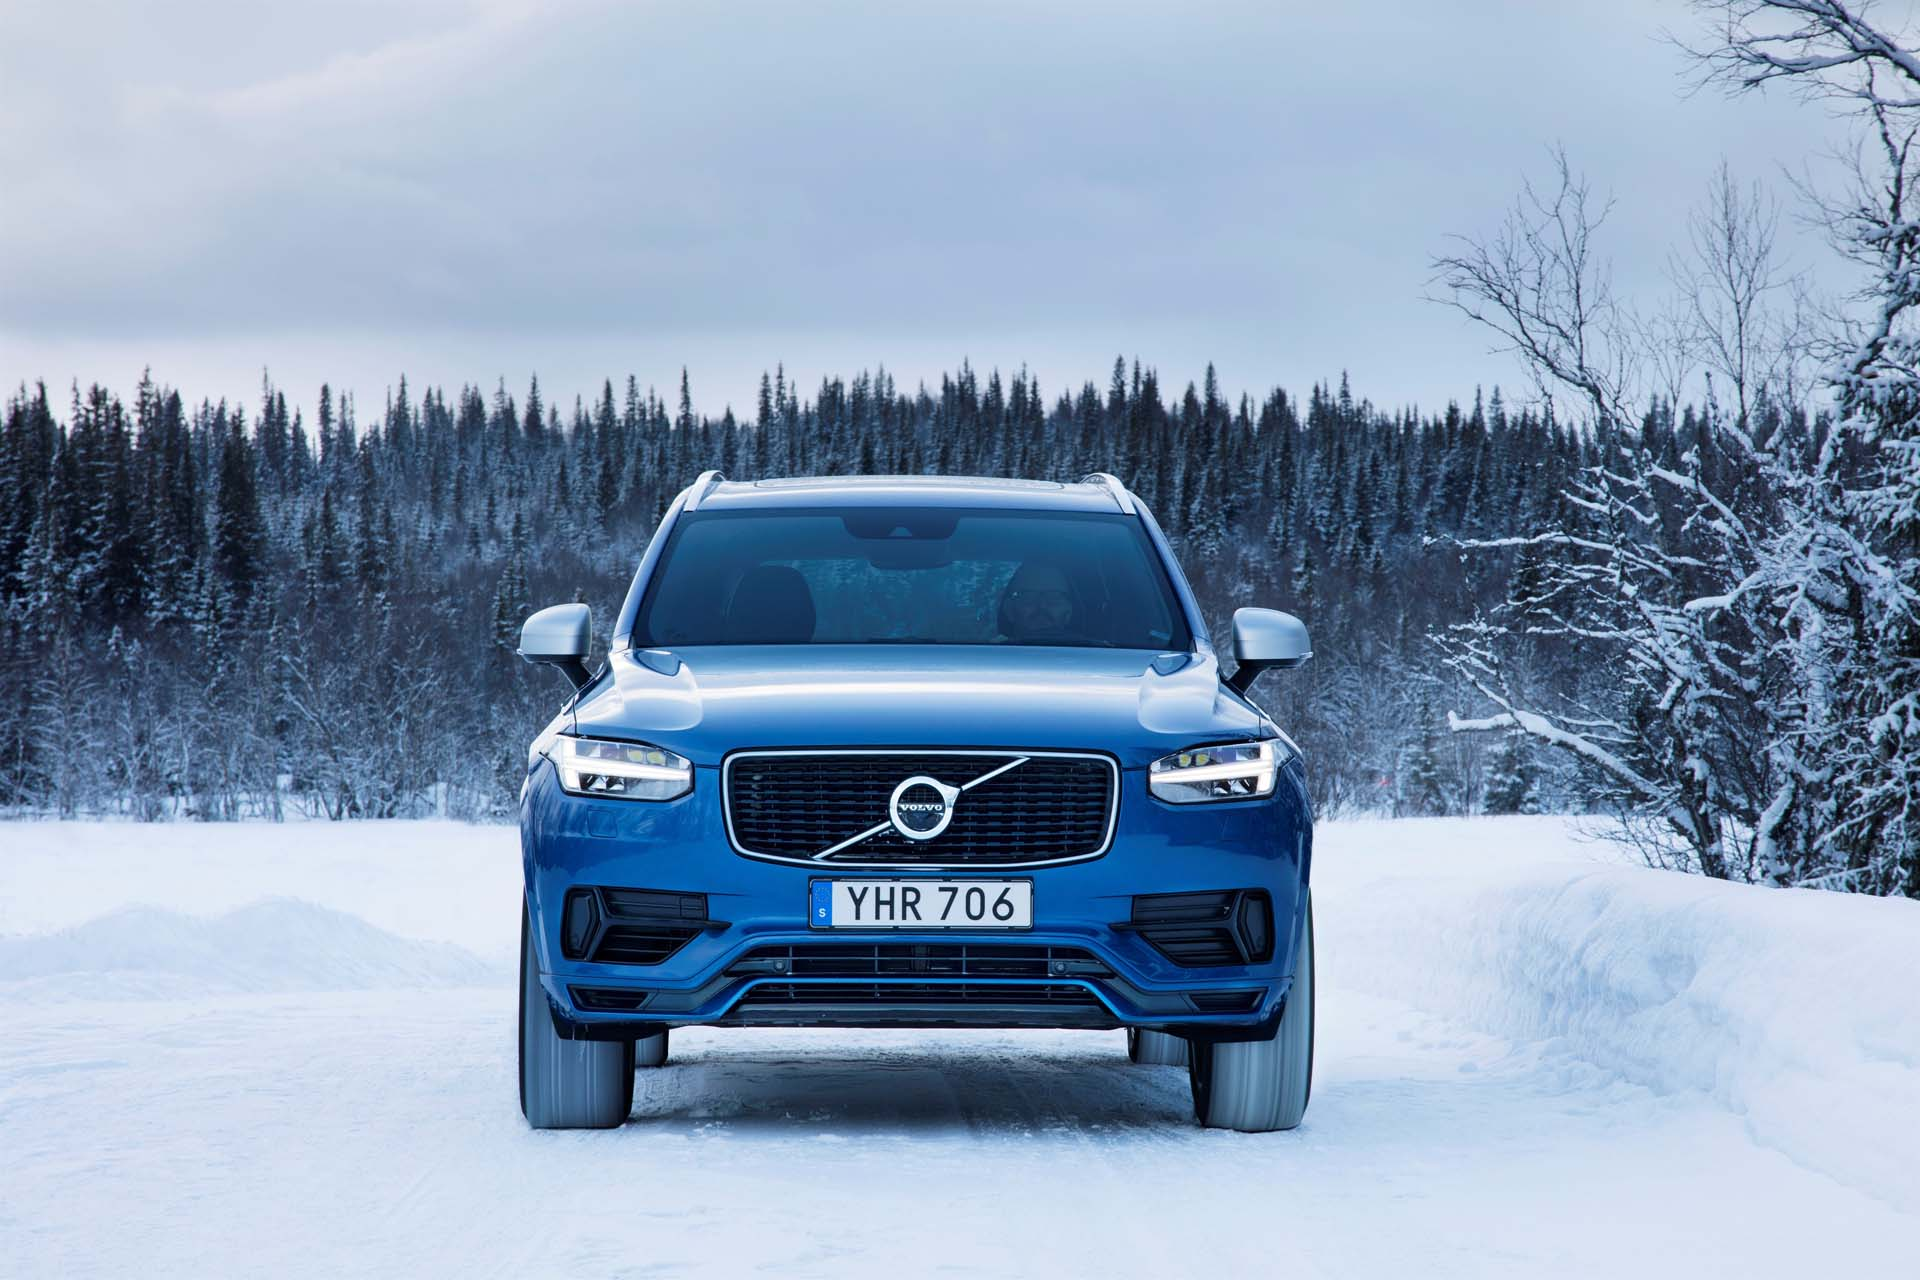 Self-driving Volvo XC90 coming in 2021